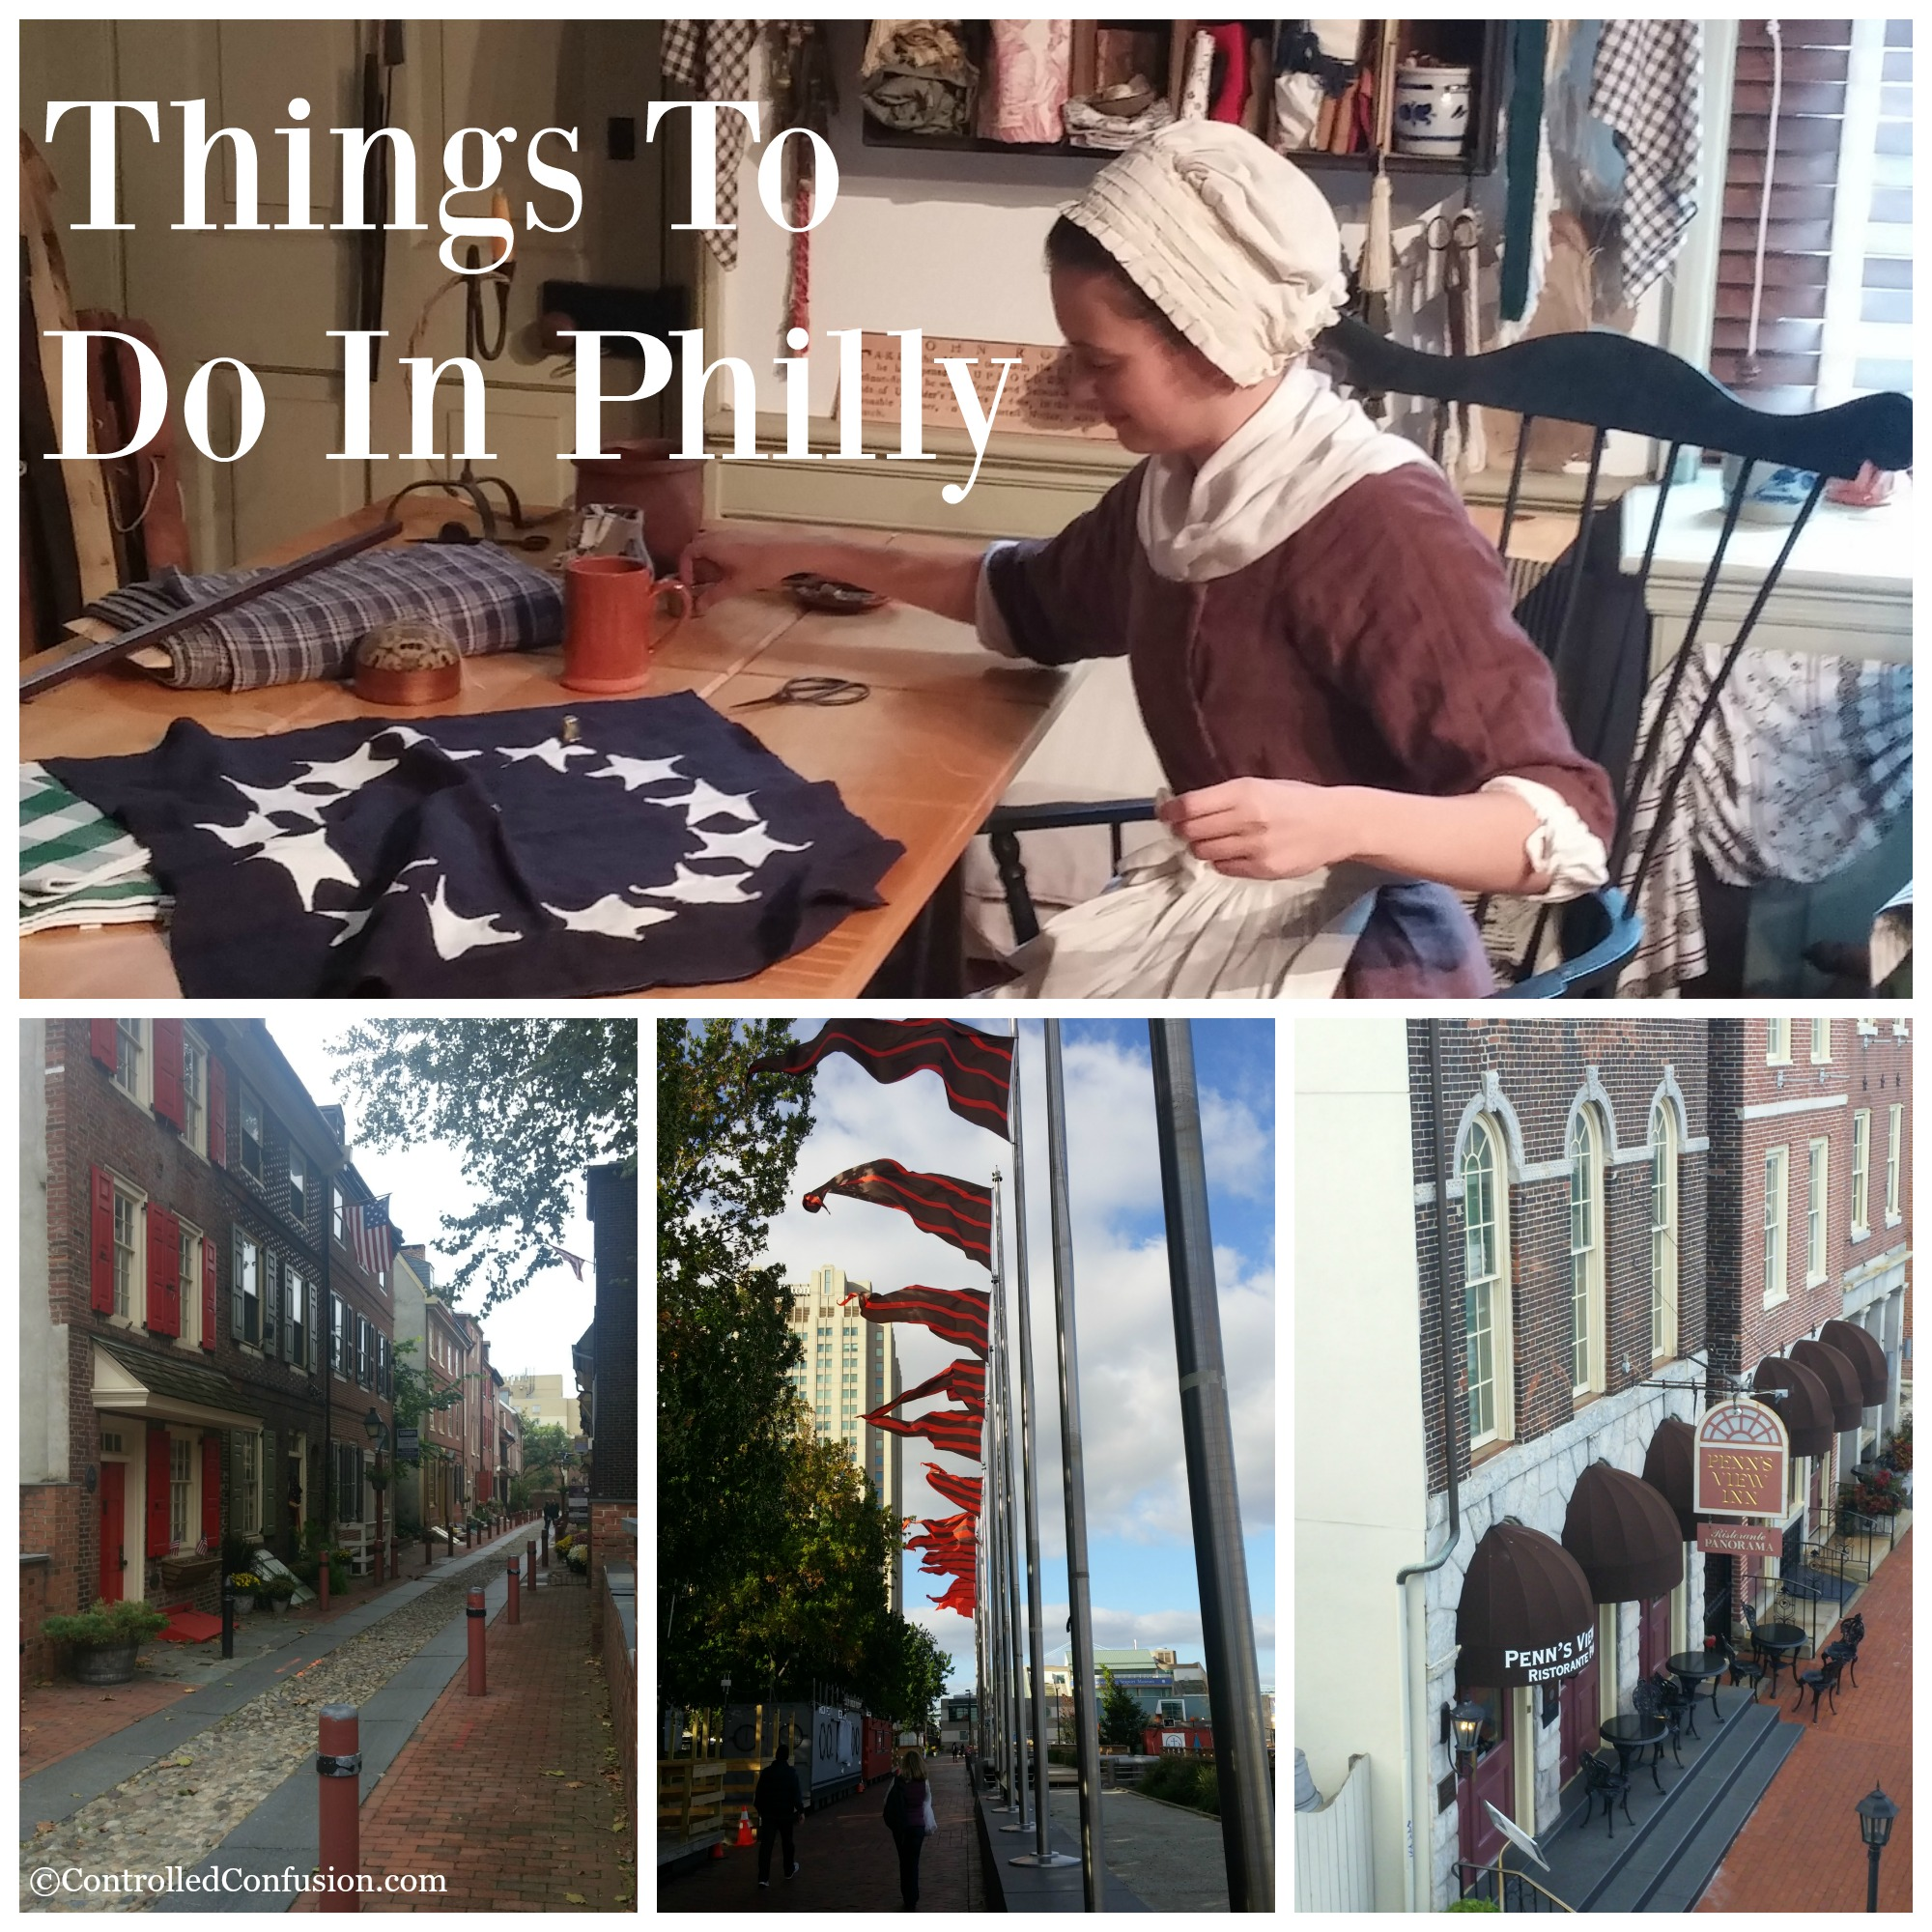 Philadelphia…More Than Just Cheese Steaks